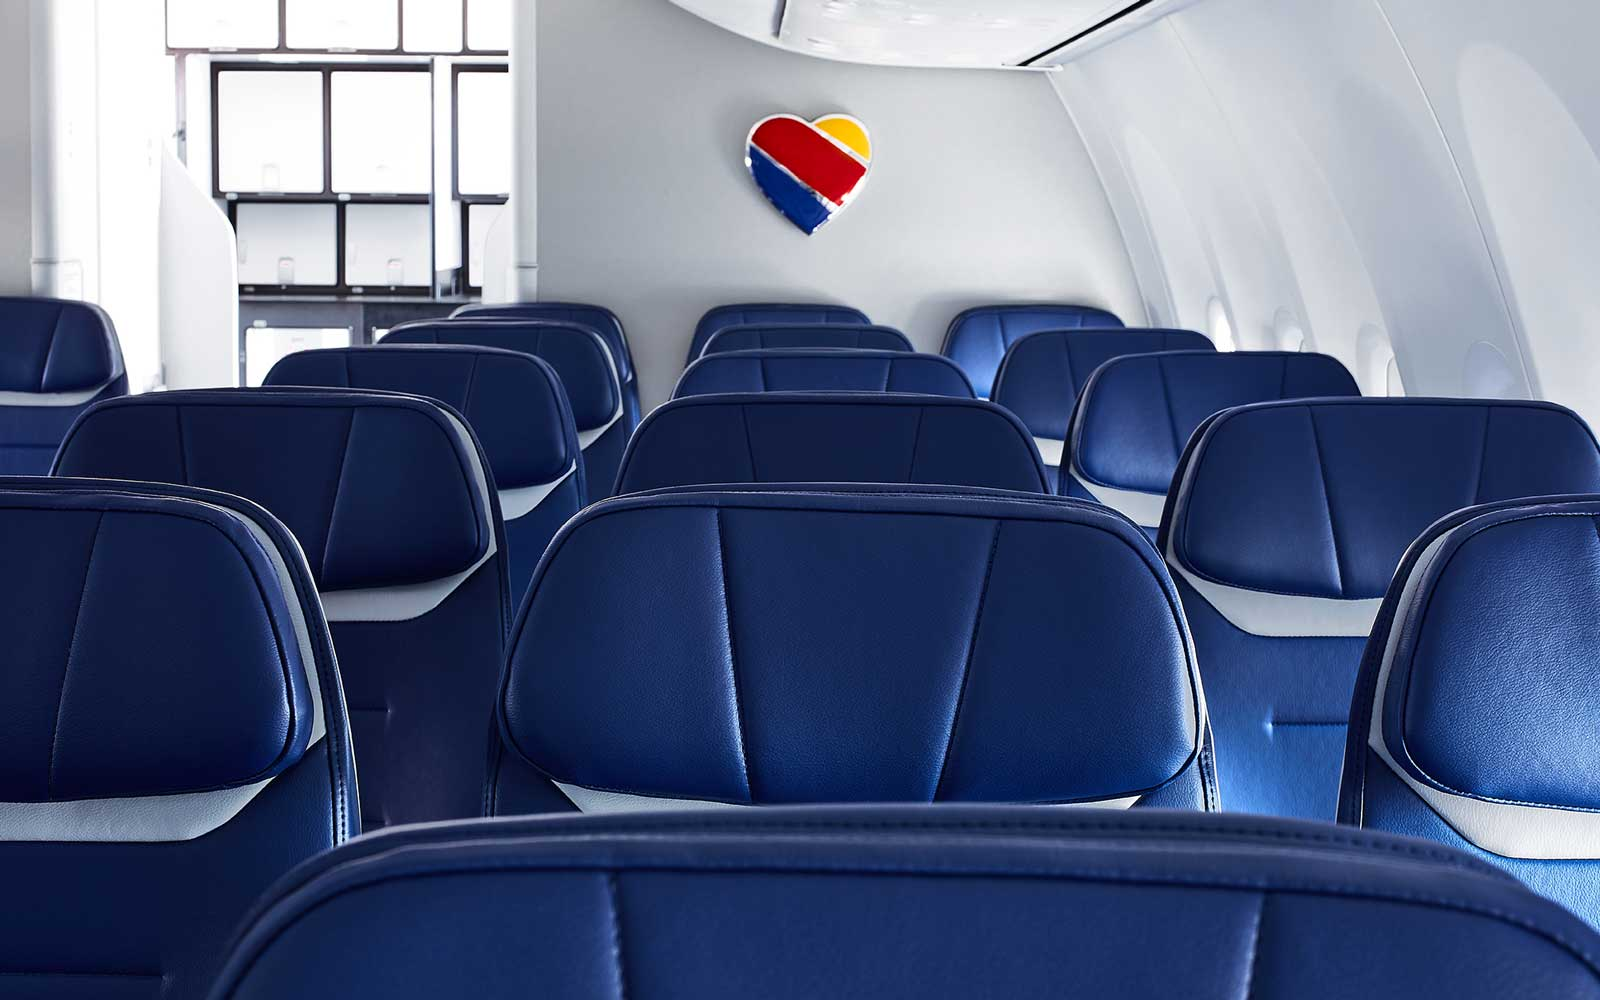 What Southwest's CEO Has to Say About the Airline's Plans for Assigned Seating